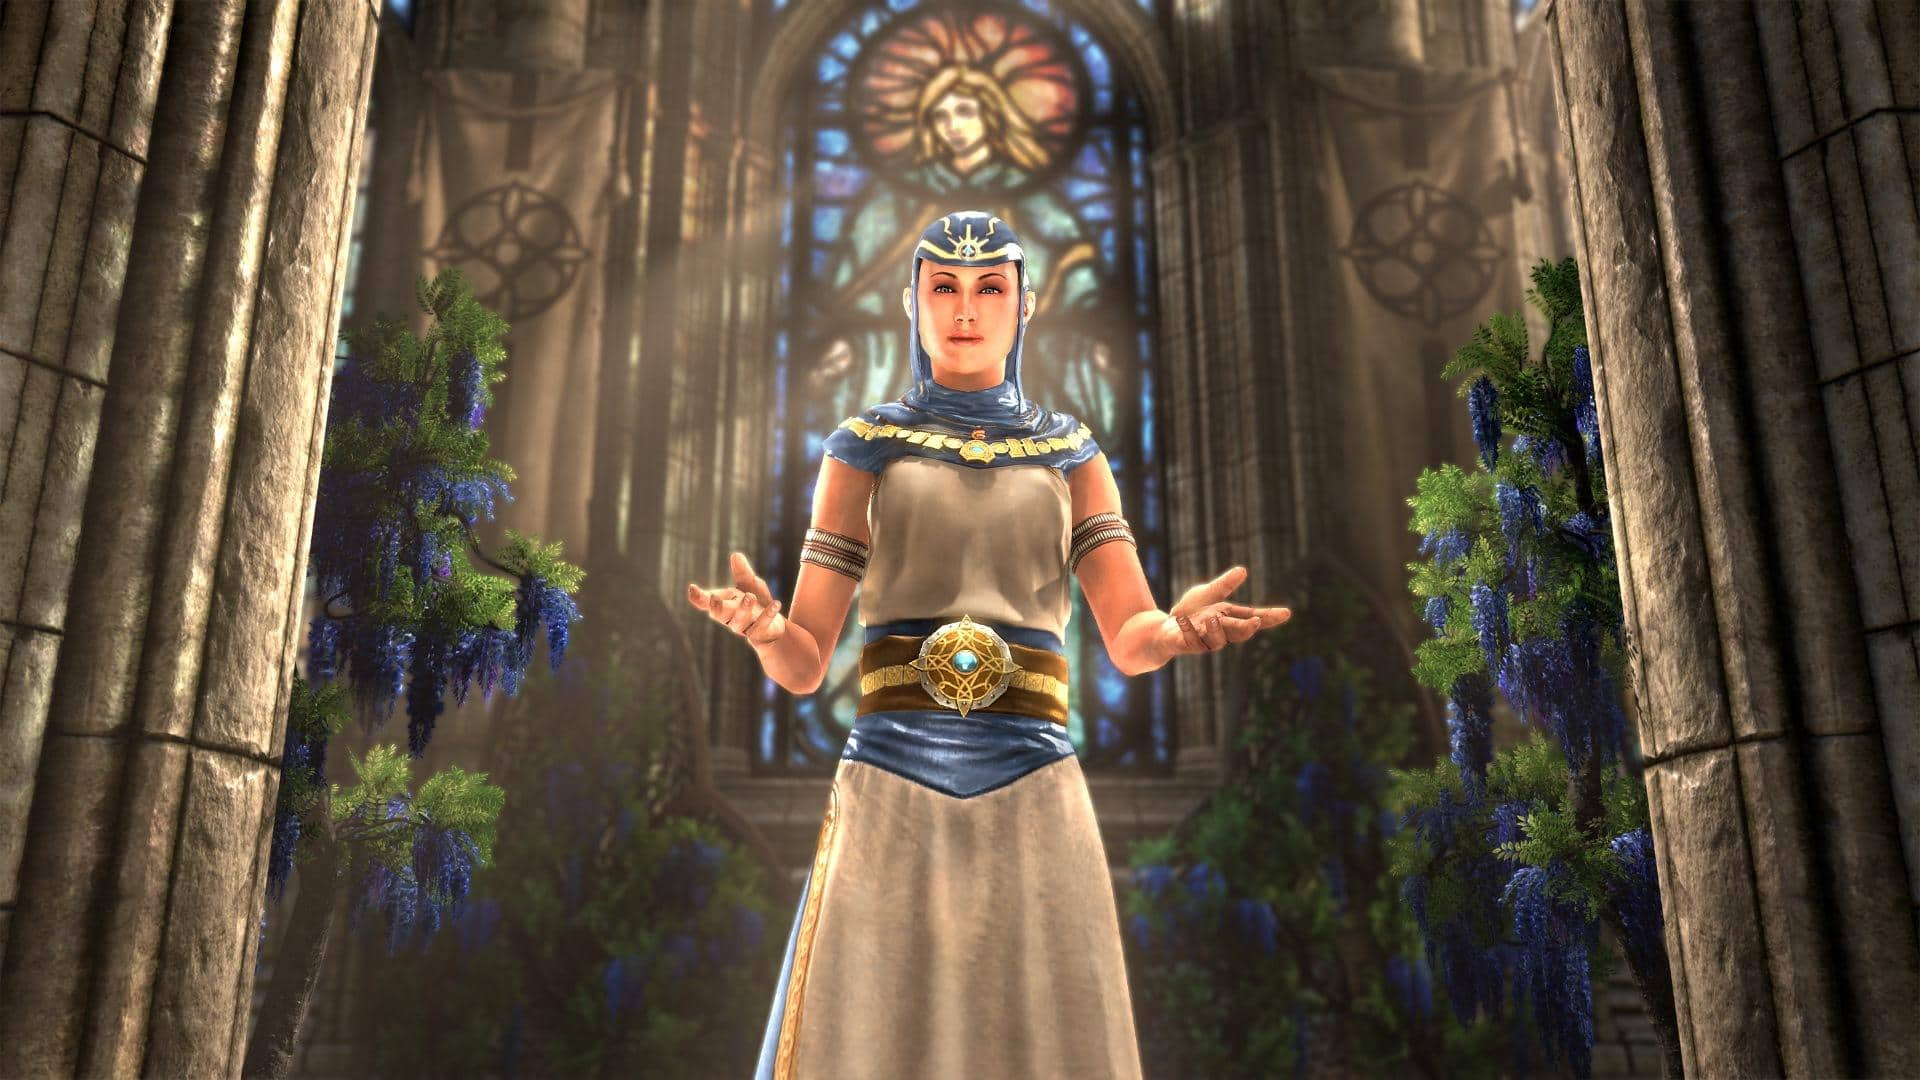 ... member-exclusive items includes a unique collectible  the Priestess of  Mara costume. Note that the new costume will not be available immediately e6b7c11e08b69